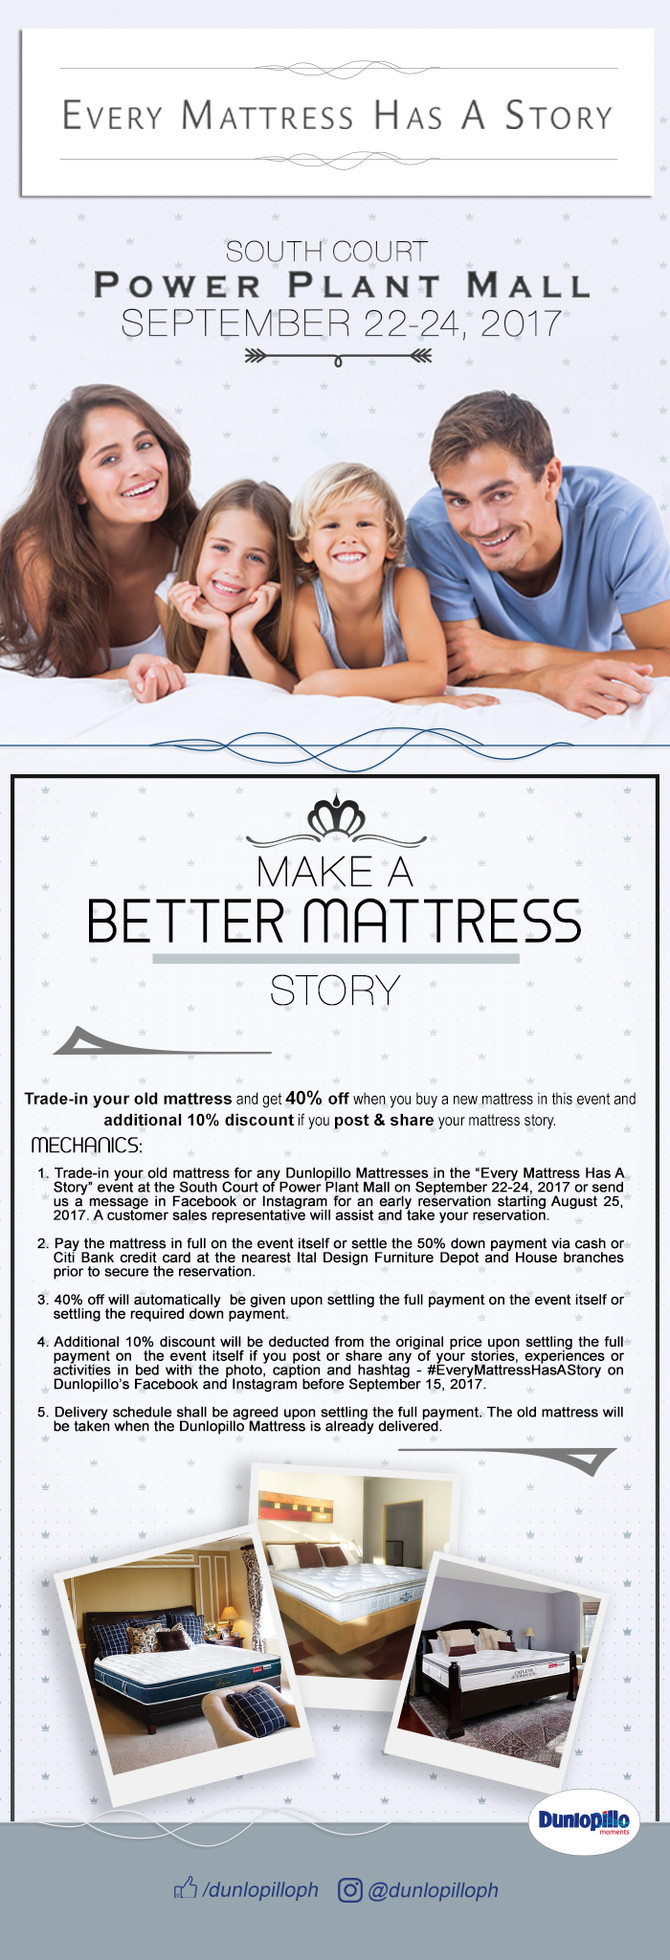 Every Mattress Has A Story - Come in this memorable exhibit!